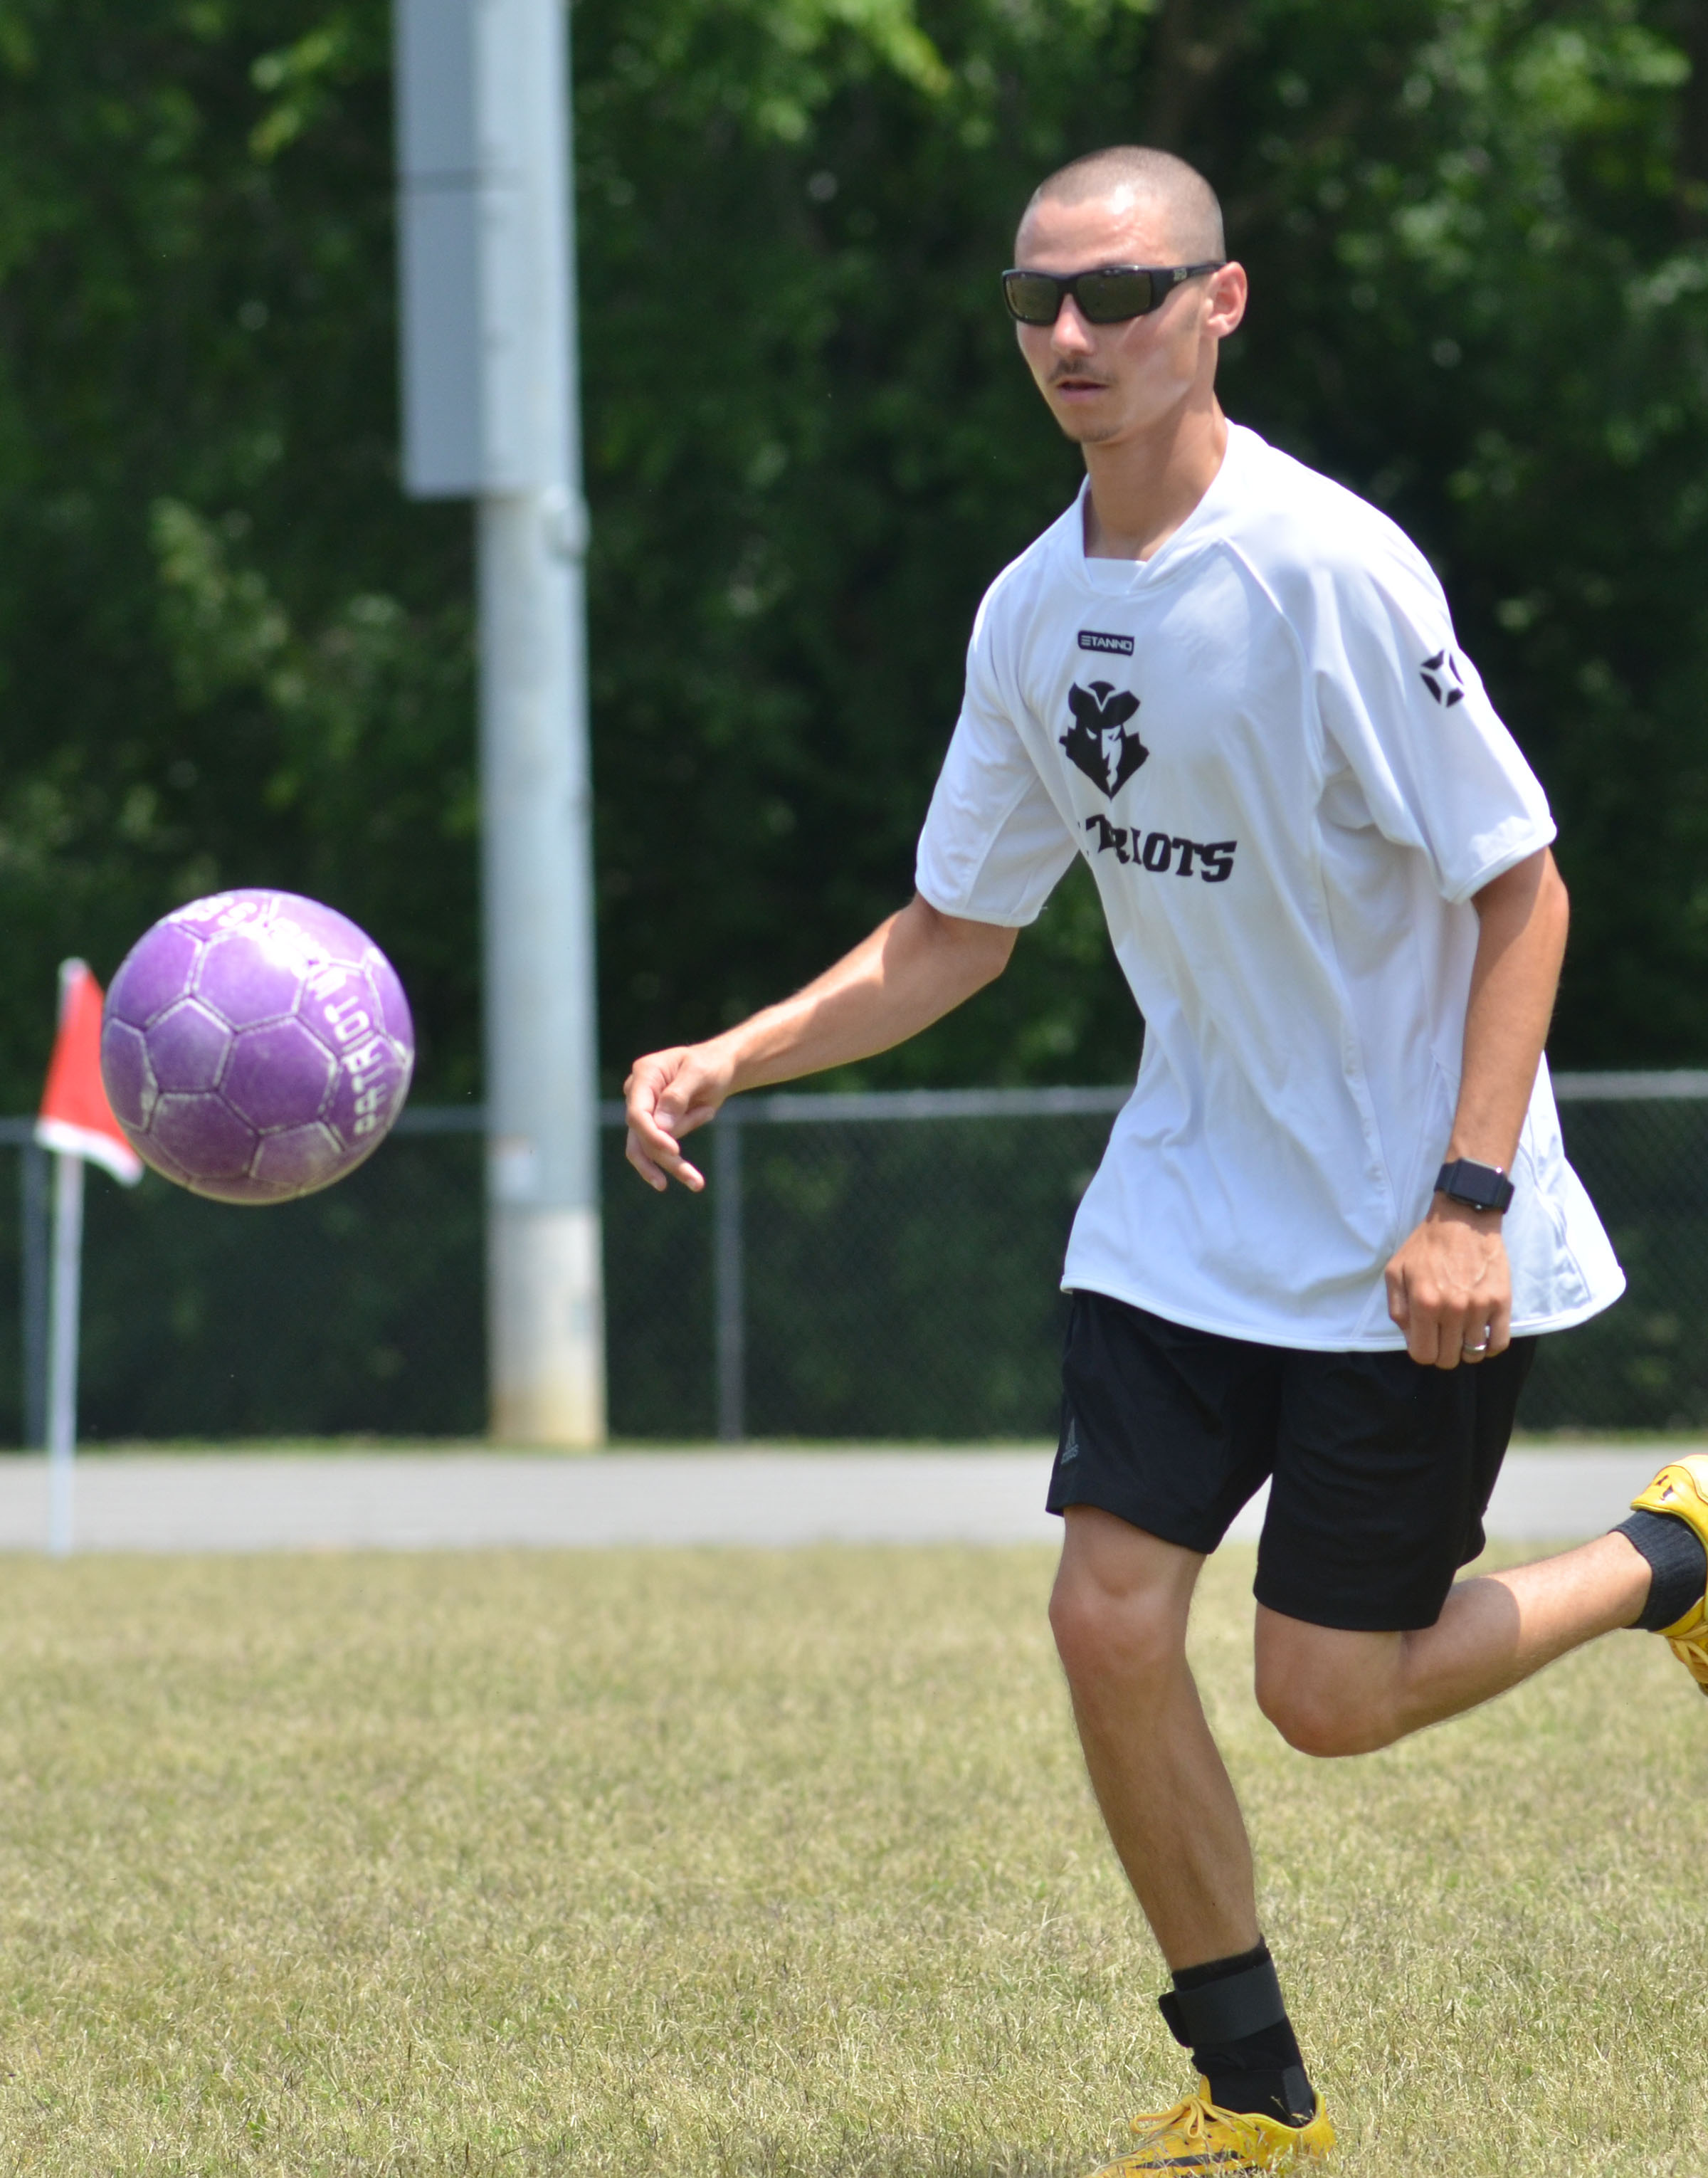 CHS soccer alumni player Bradley Harris, who is also head coach, kicks the ball.